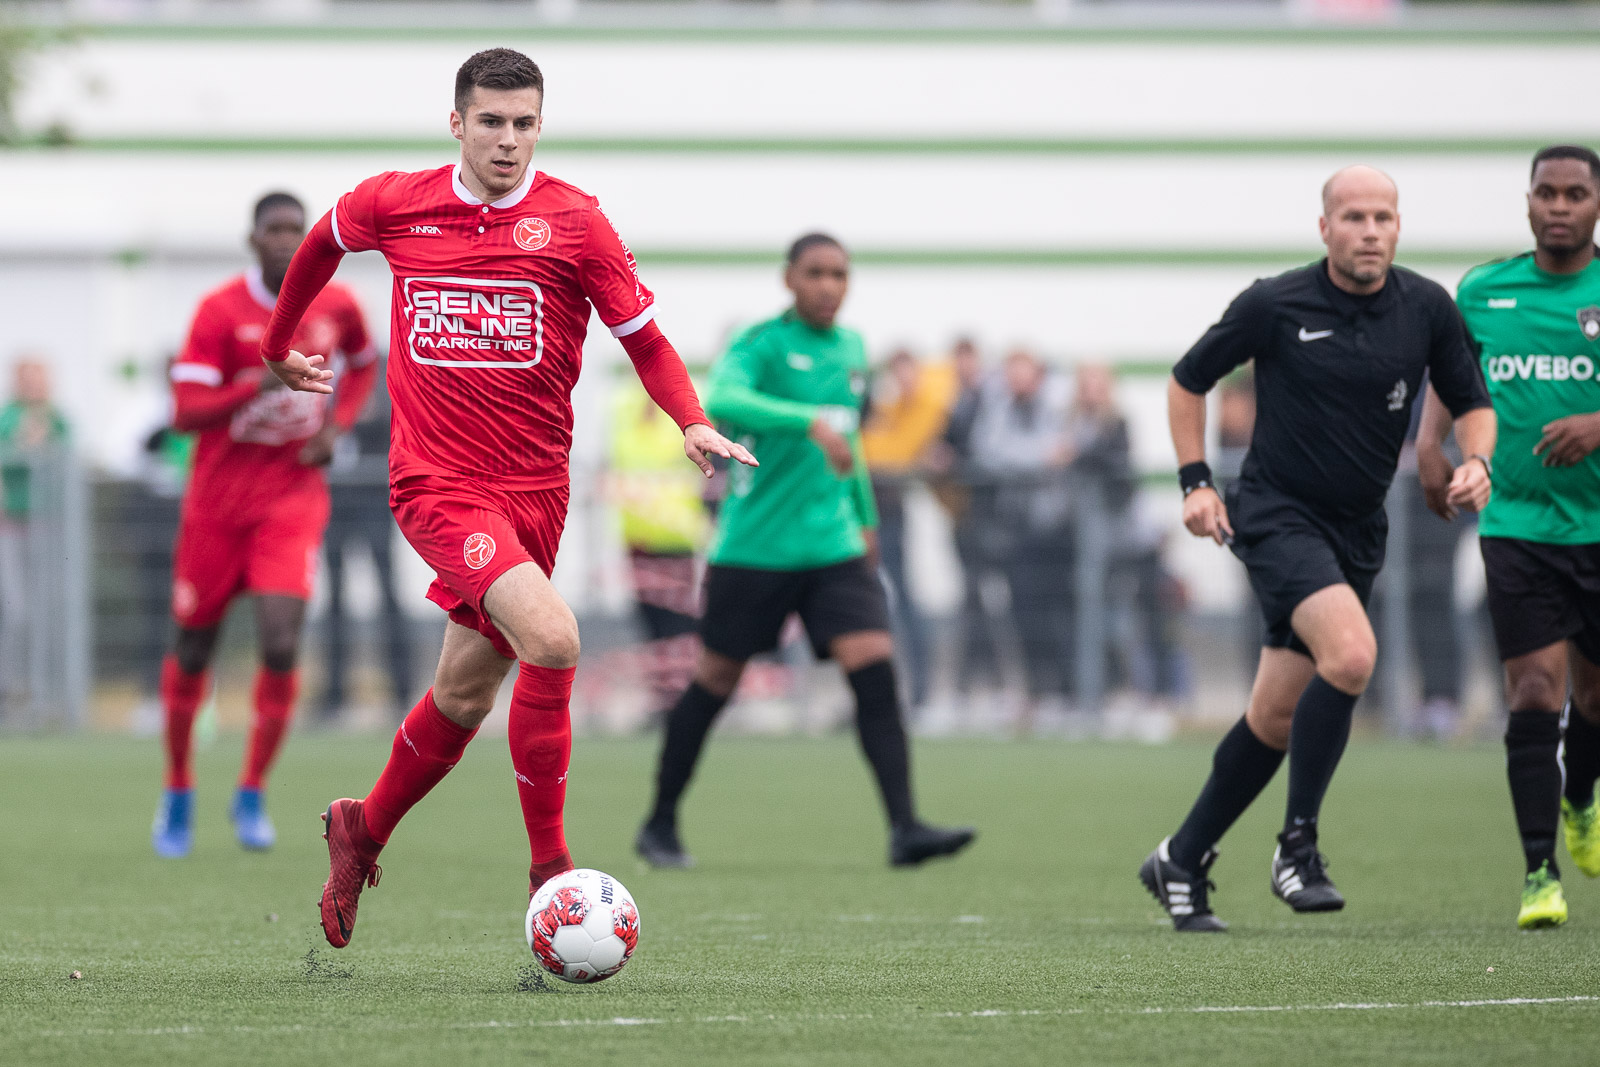 Hoofdsponsor SenS Online Marketing en Almere City FC starten prediction game